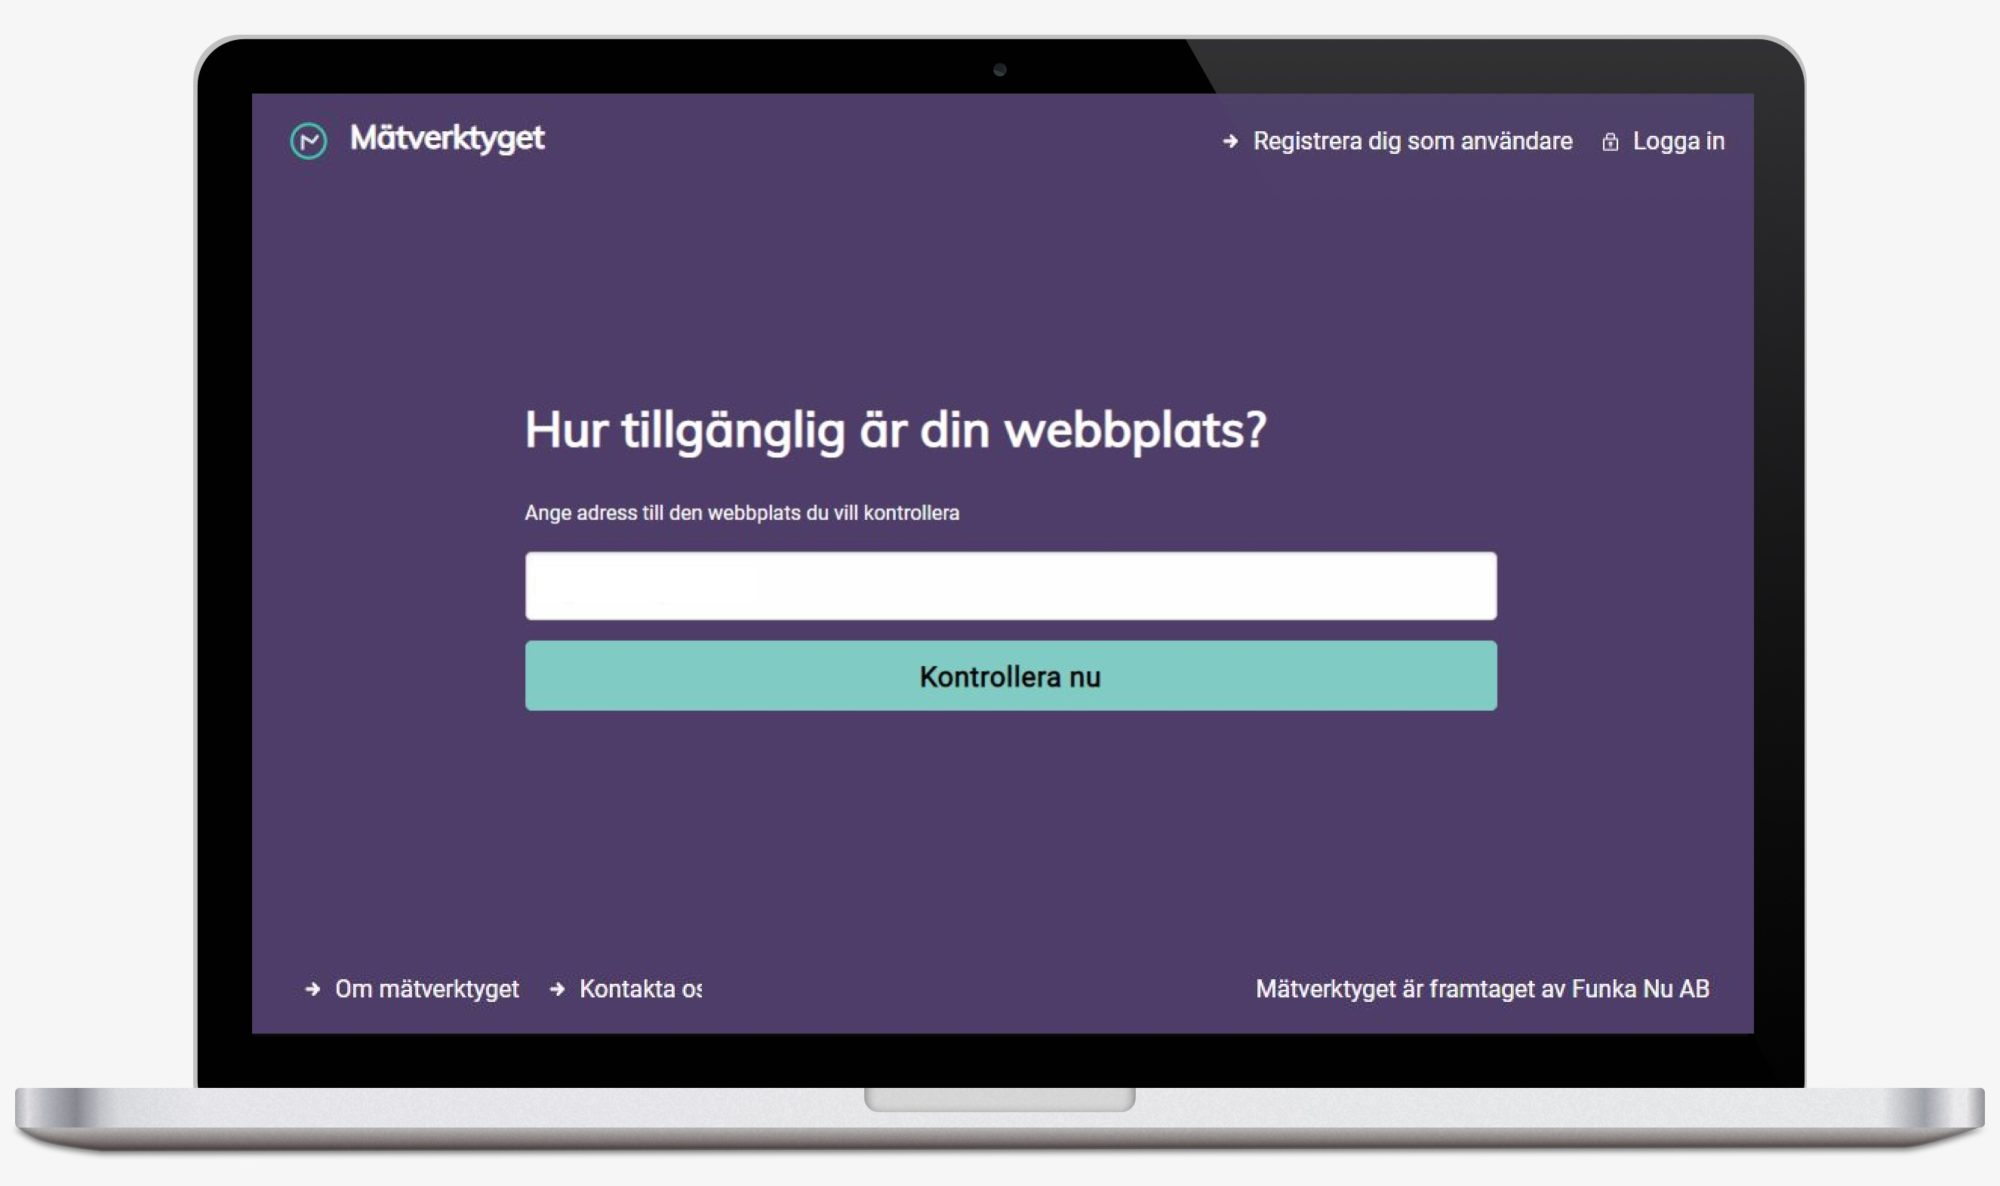 The Swedish Post and Telecom Authority product image